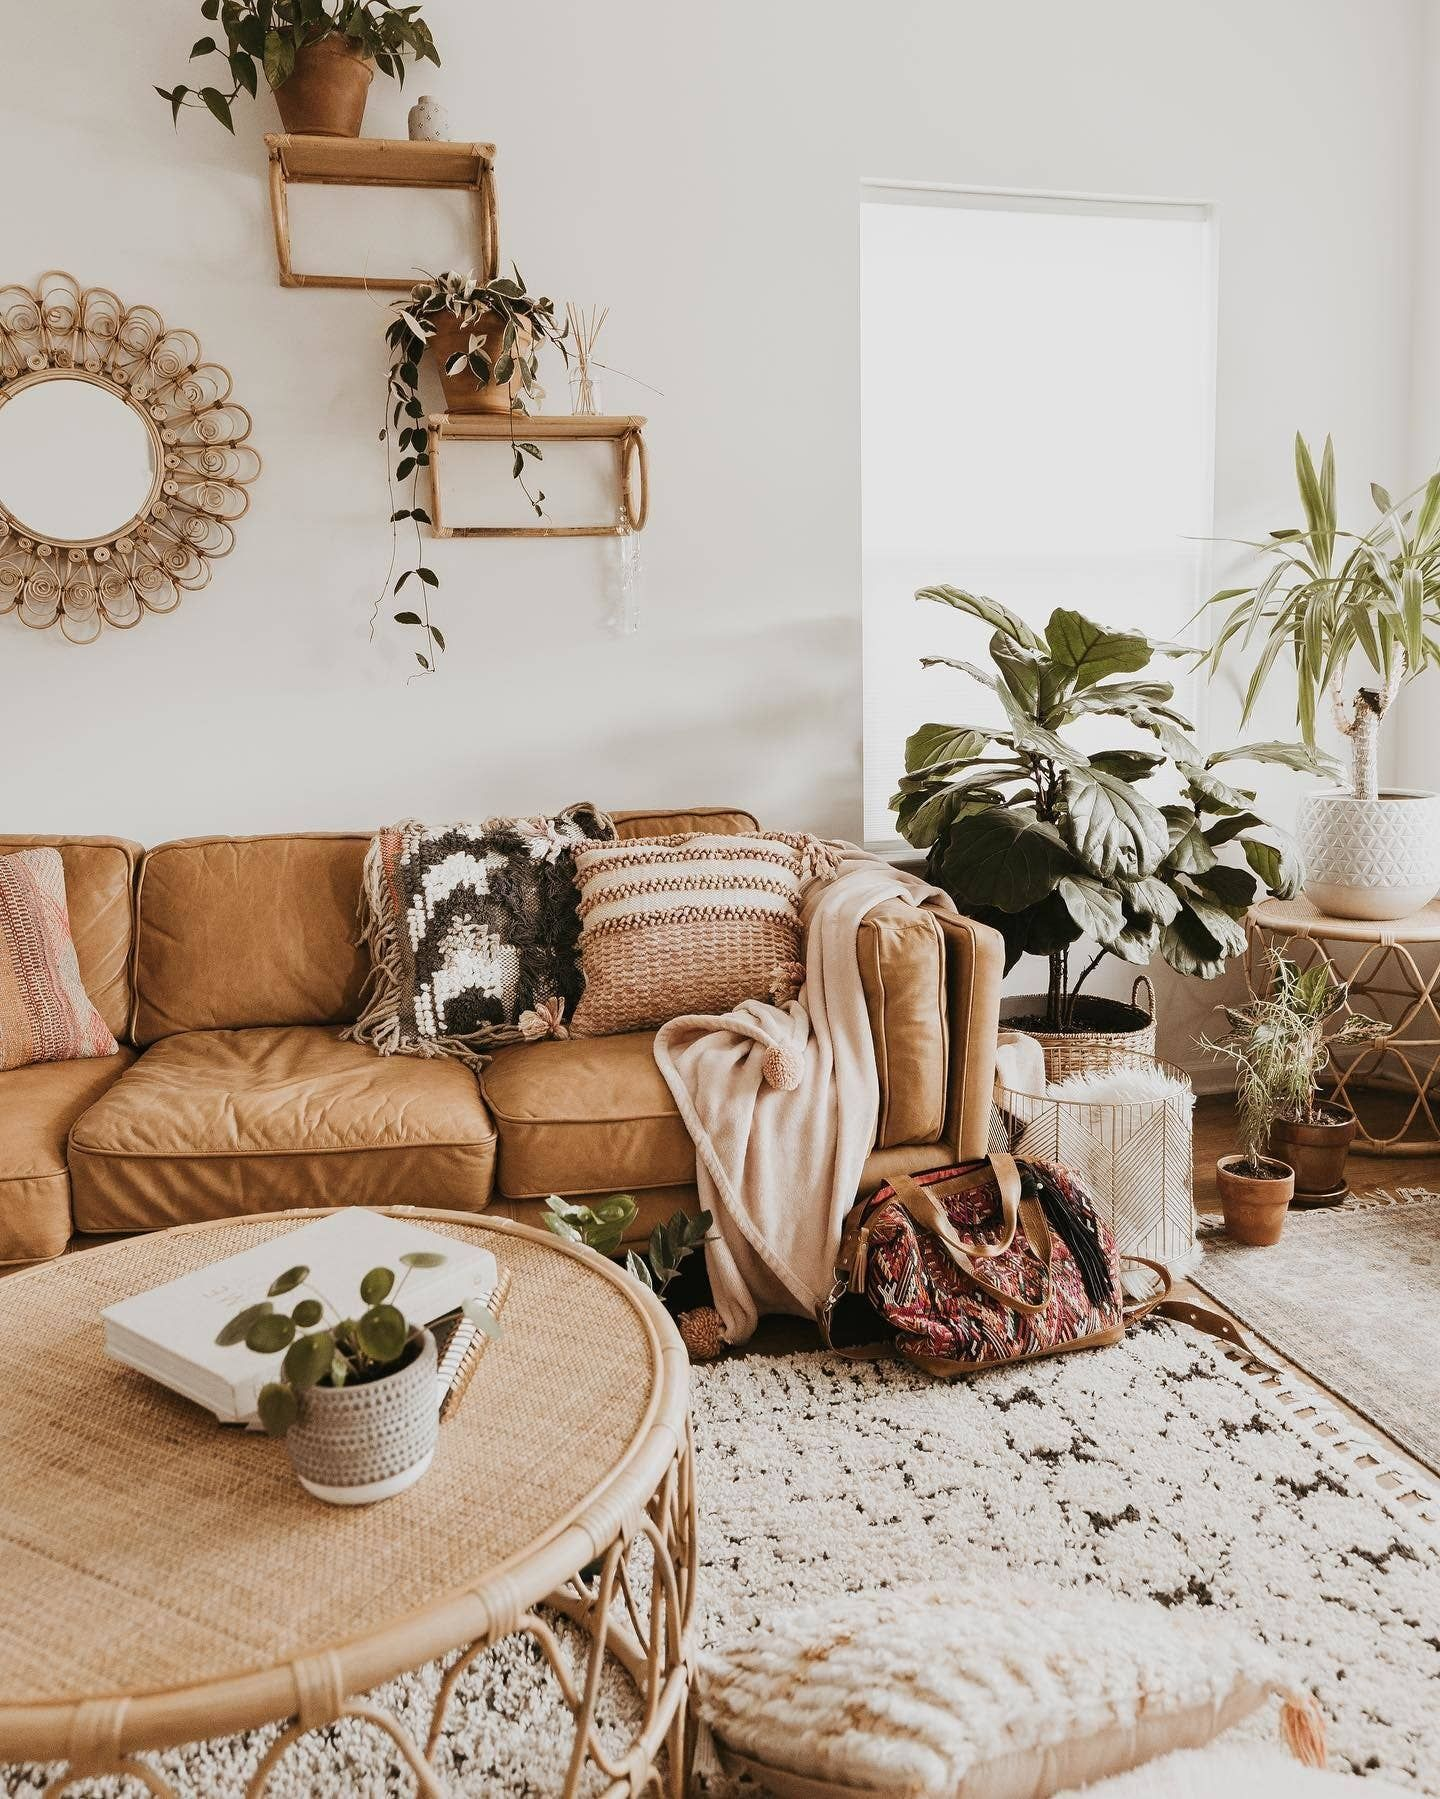 Timber Pebble Gray Sofa in 2020 Boho living room, Home